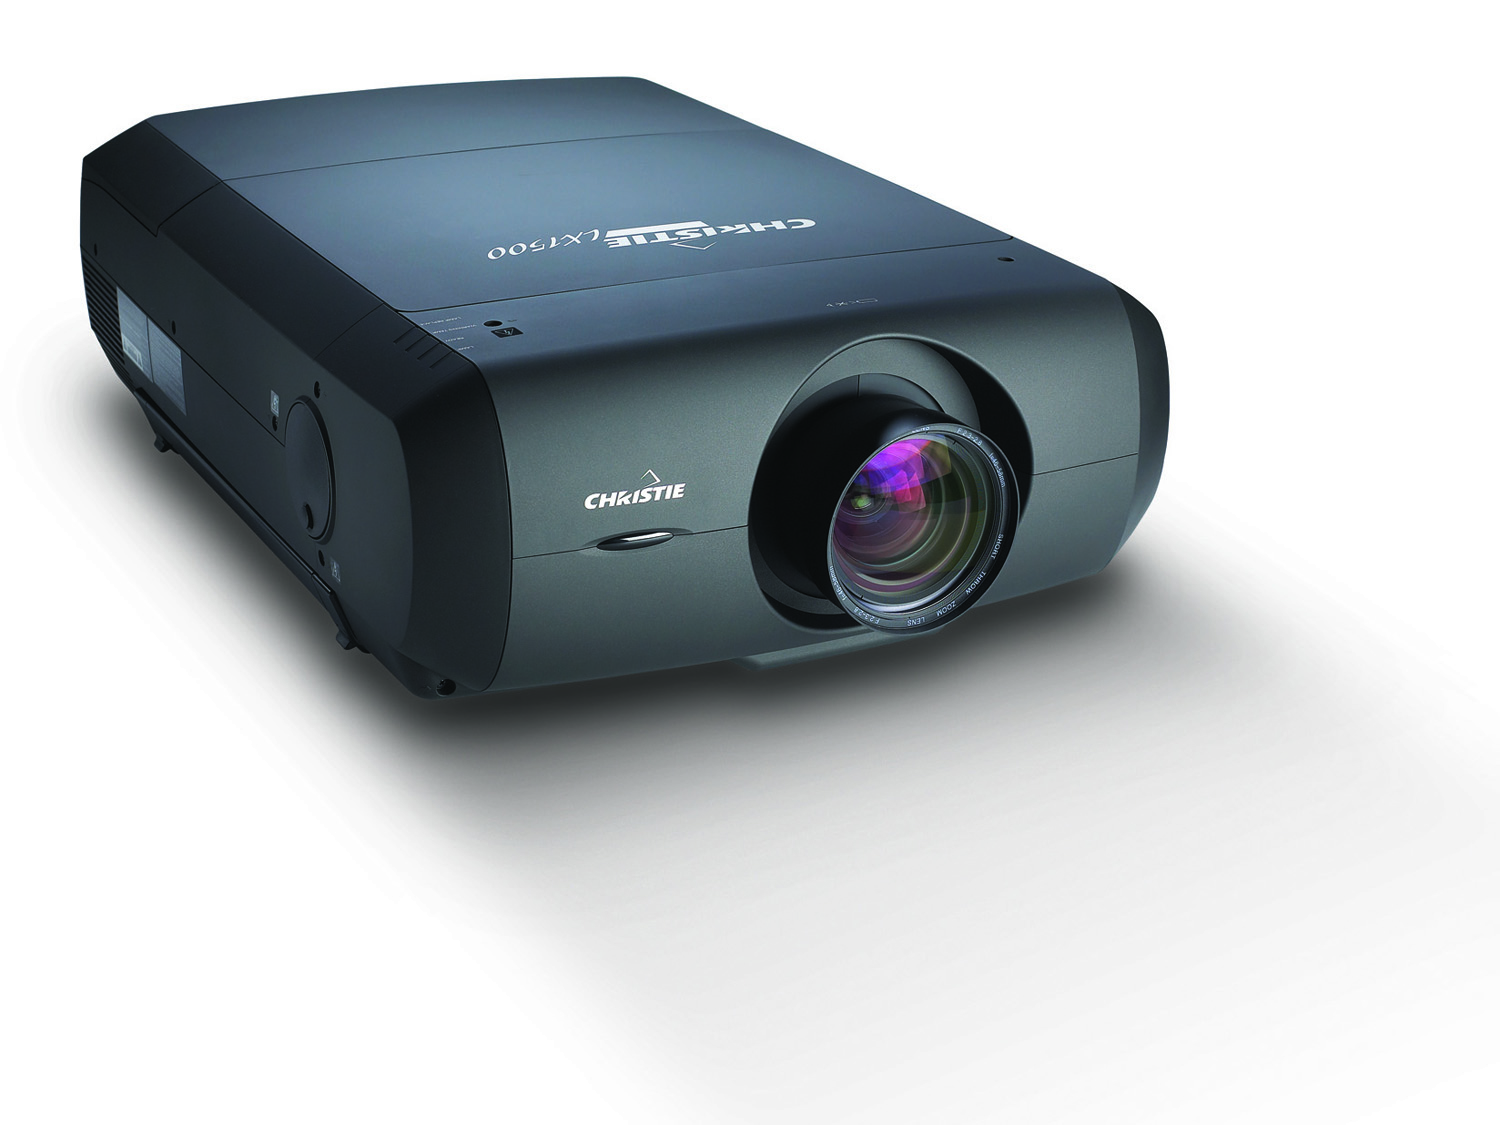 /globalassets/.catalog/products/images/christie-lx1500/gallery/christie-lx1500-lcd-projector-highleftpr.jpg